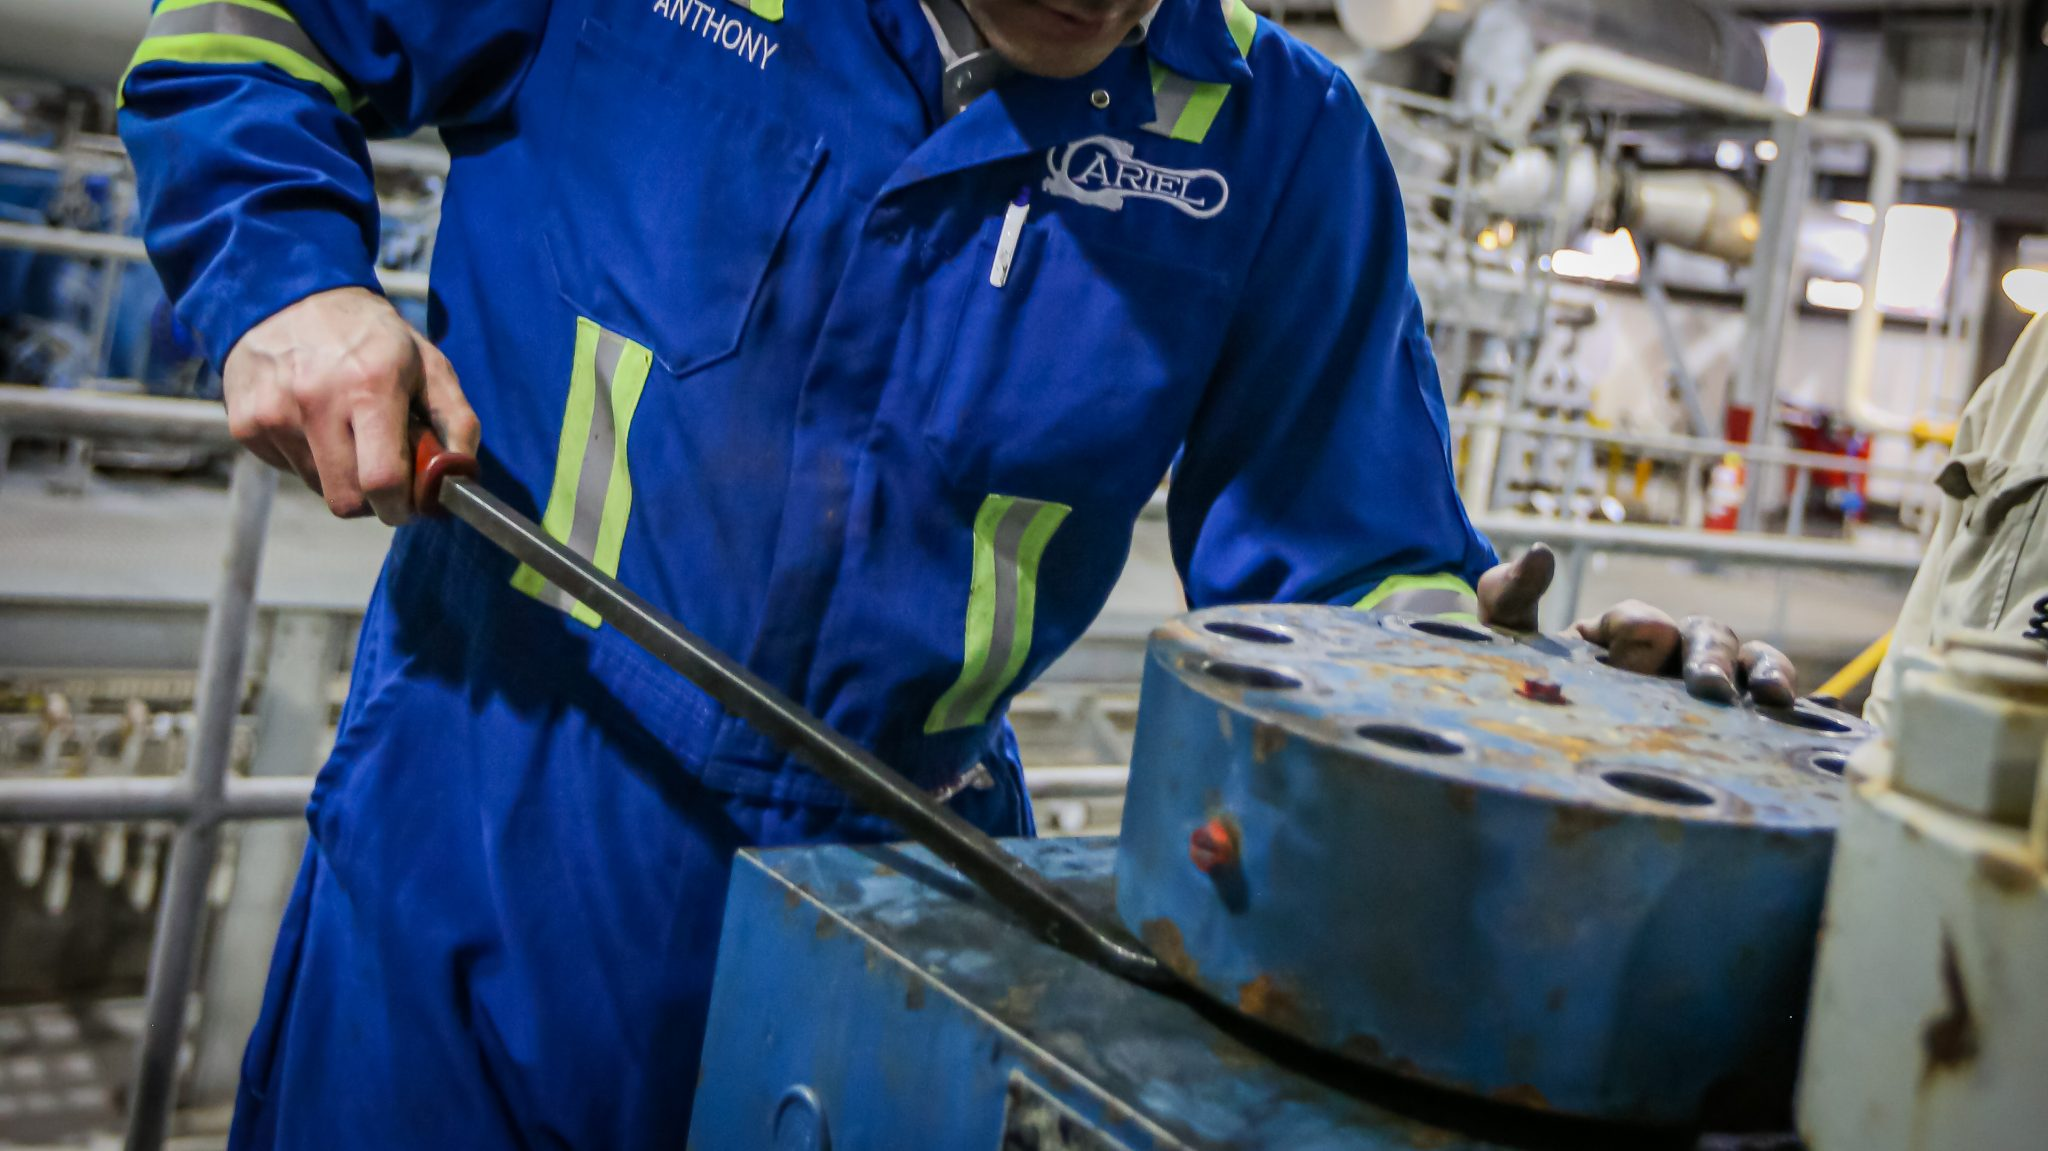 An ariel field technician using a prybar on a high pressure cylinder